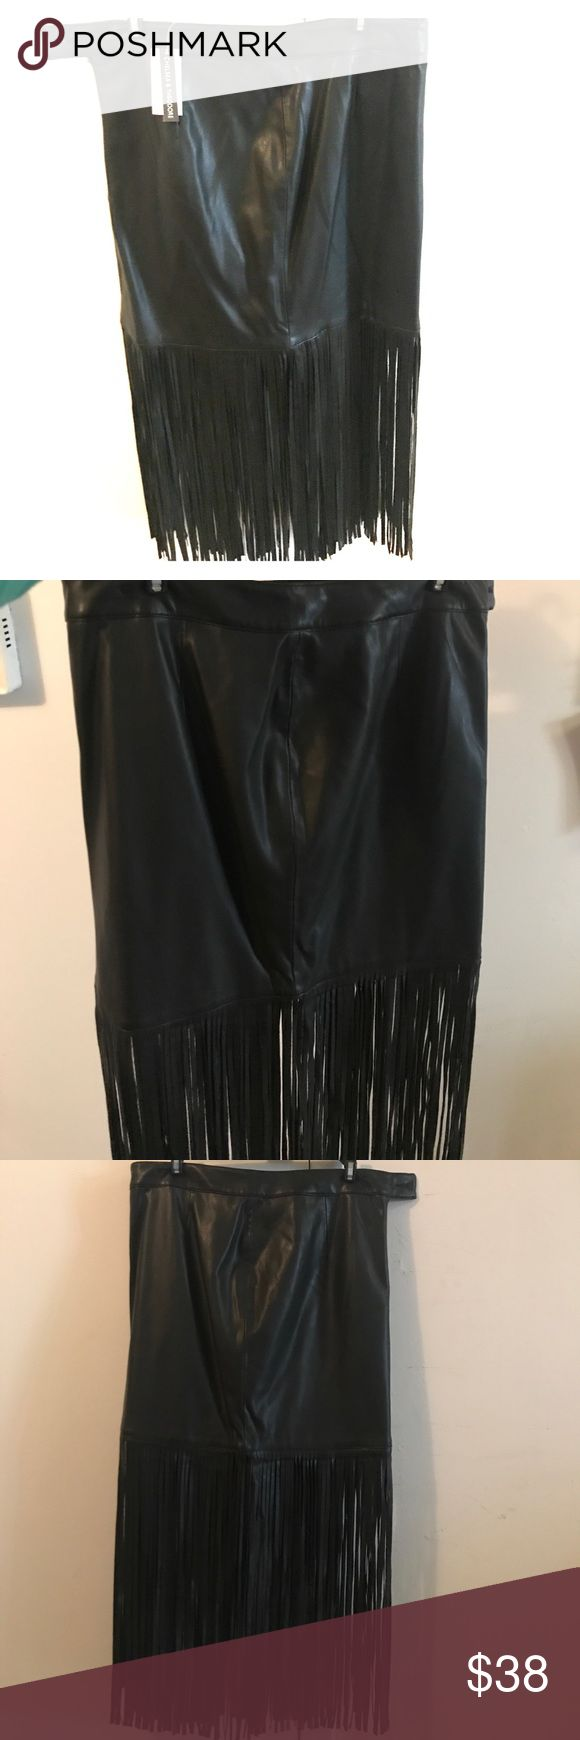 """🕶 Leatherette Fringe Skirt NWT 🕶 Resembles real leather, great quality! Brand new leather skirt with fringe bottom. Skirt length is 15"""" Fringe adds another 16""""   Dress up or down! Waist 30"""" Bloomingdale's Skirts"""